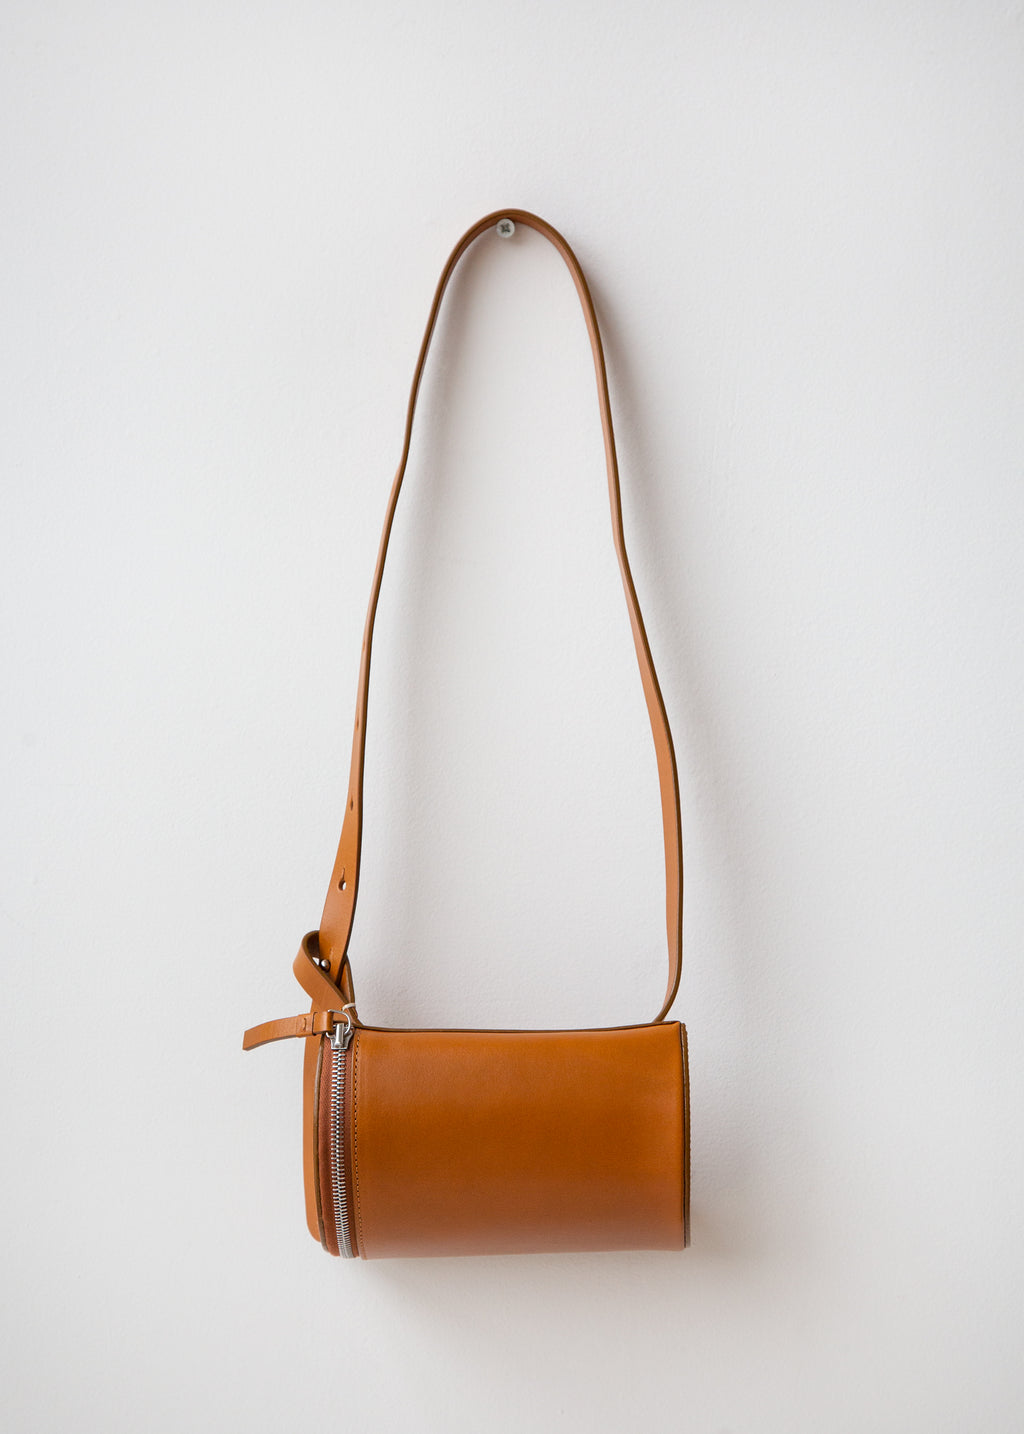 Beltpack in Chestnut Leather - SOLD OUT